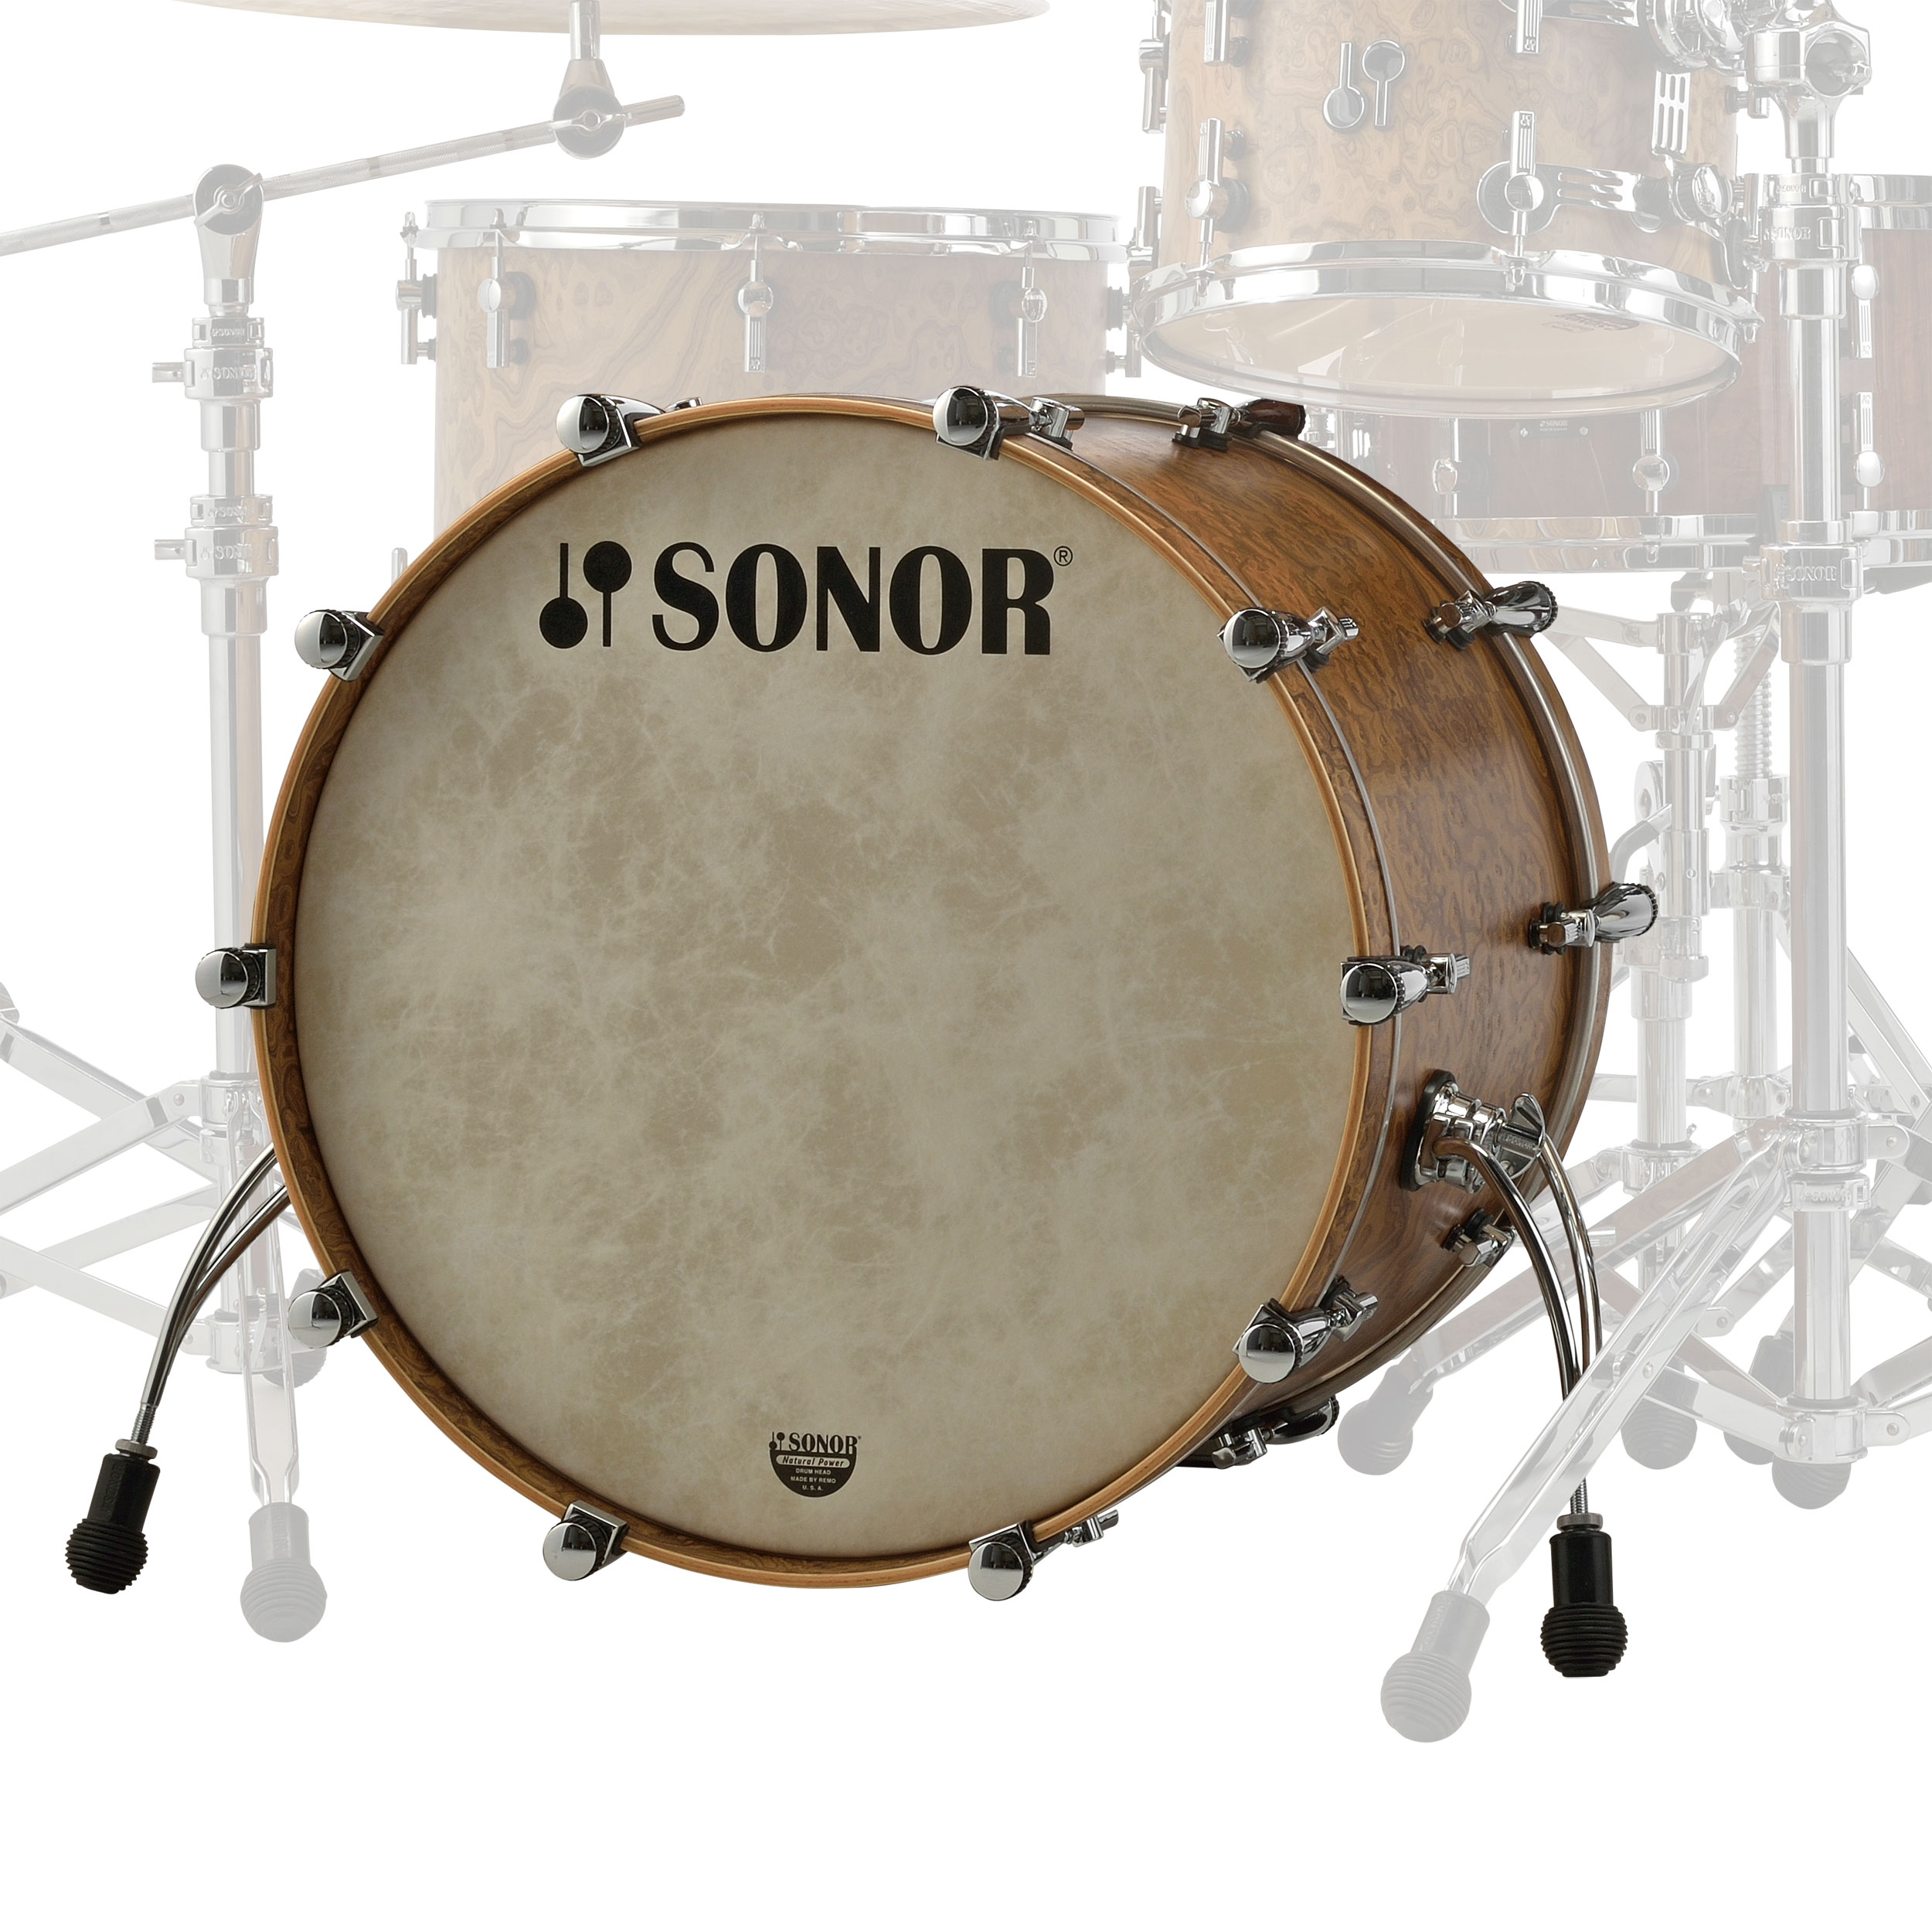 "Sonor 24"" x 14"" SQ2 Vintage Maple Bass Drum"